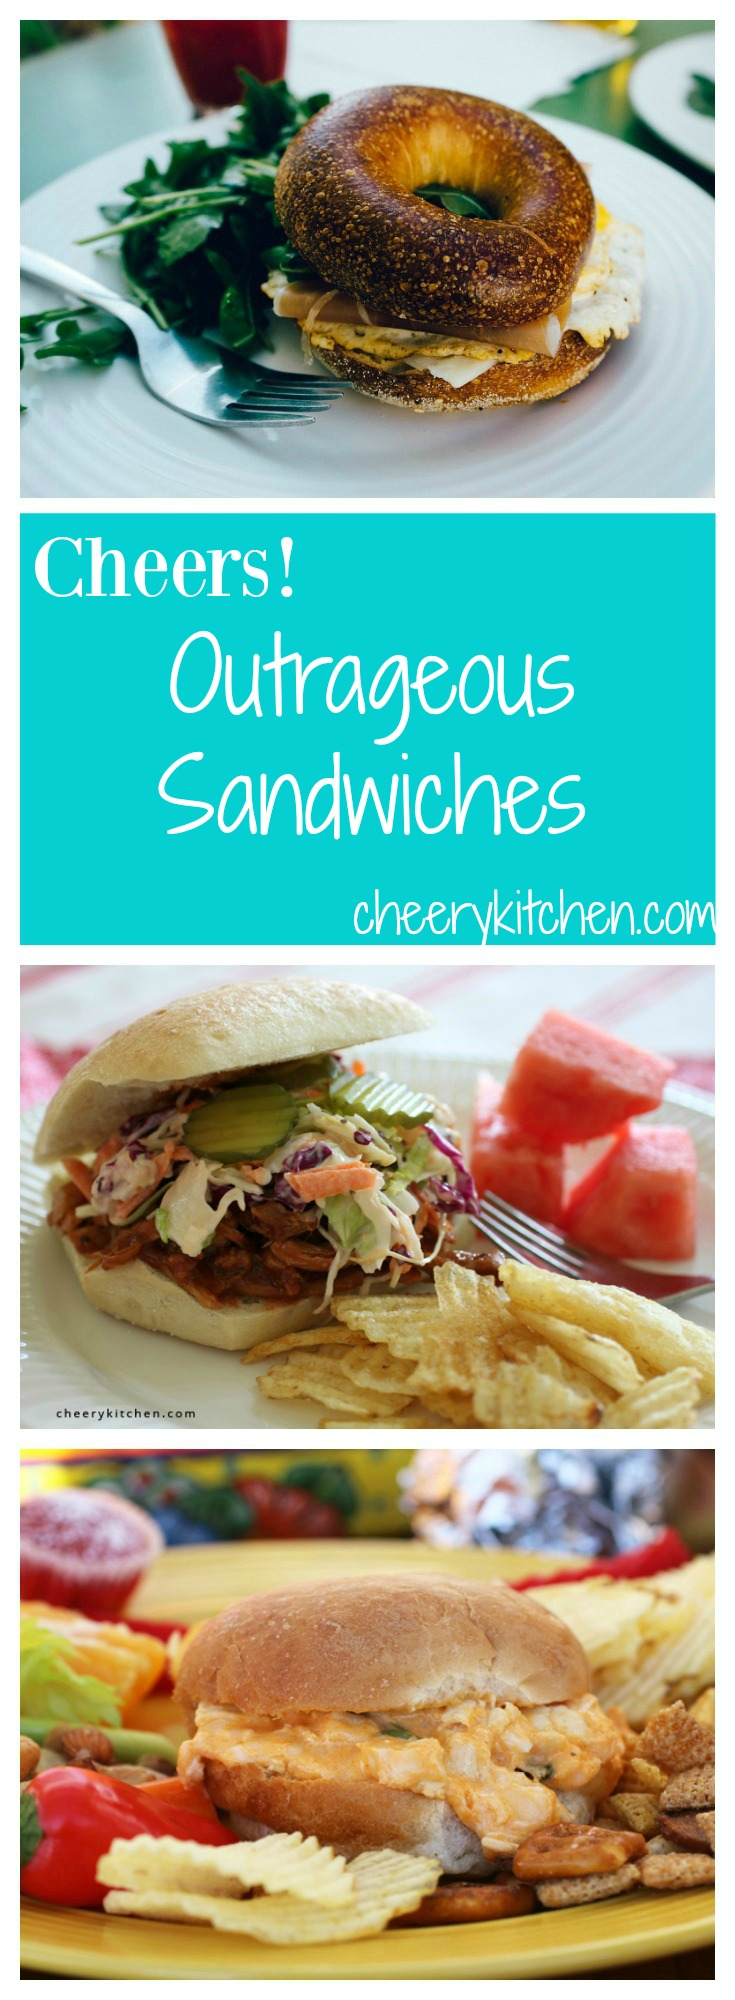 Sandwiches are not just bread and meat anymore! Check out the most outrageous sandwiches around the web including my personal favorite!